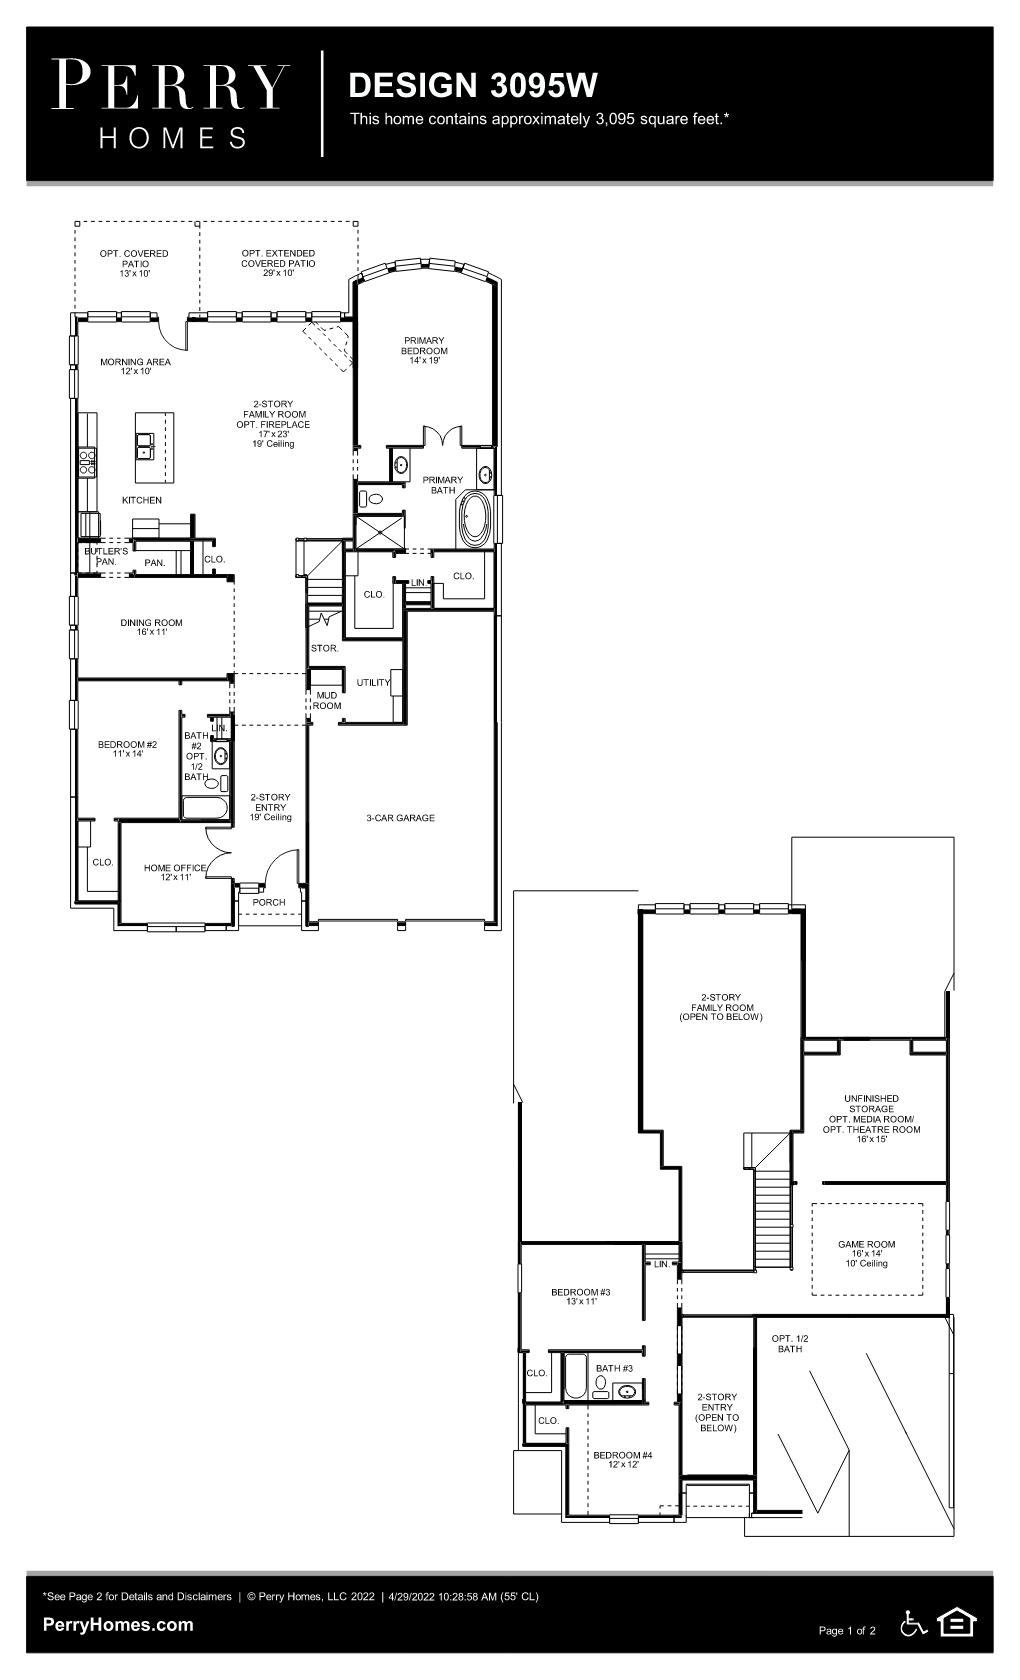 Floor Plan for 3095W